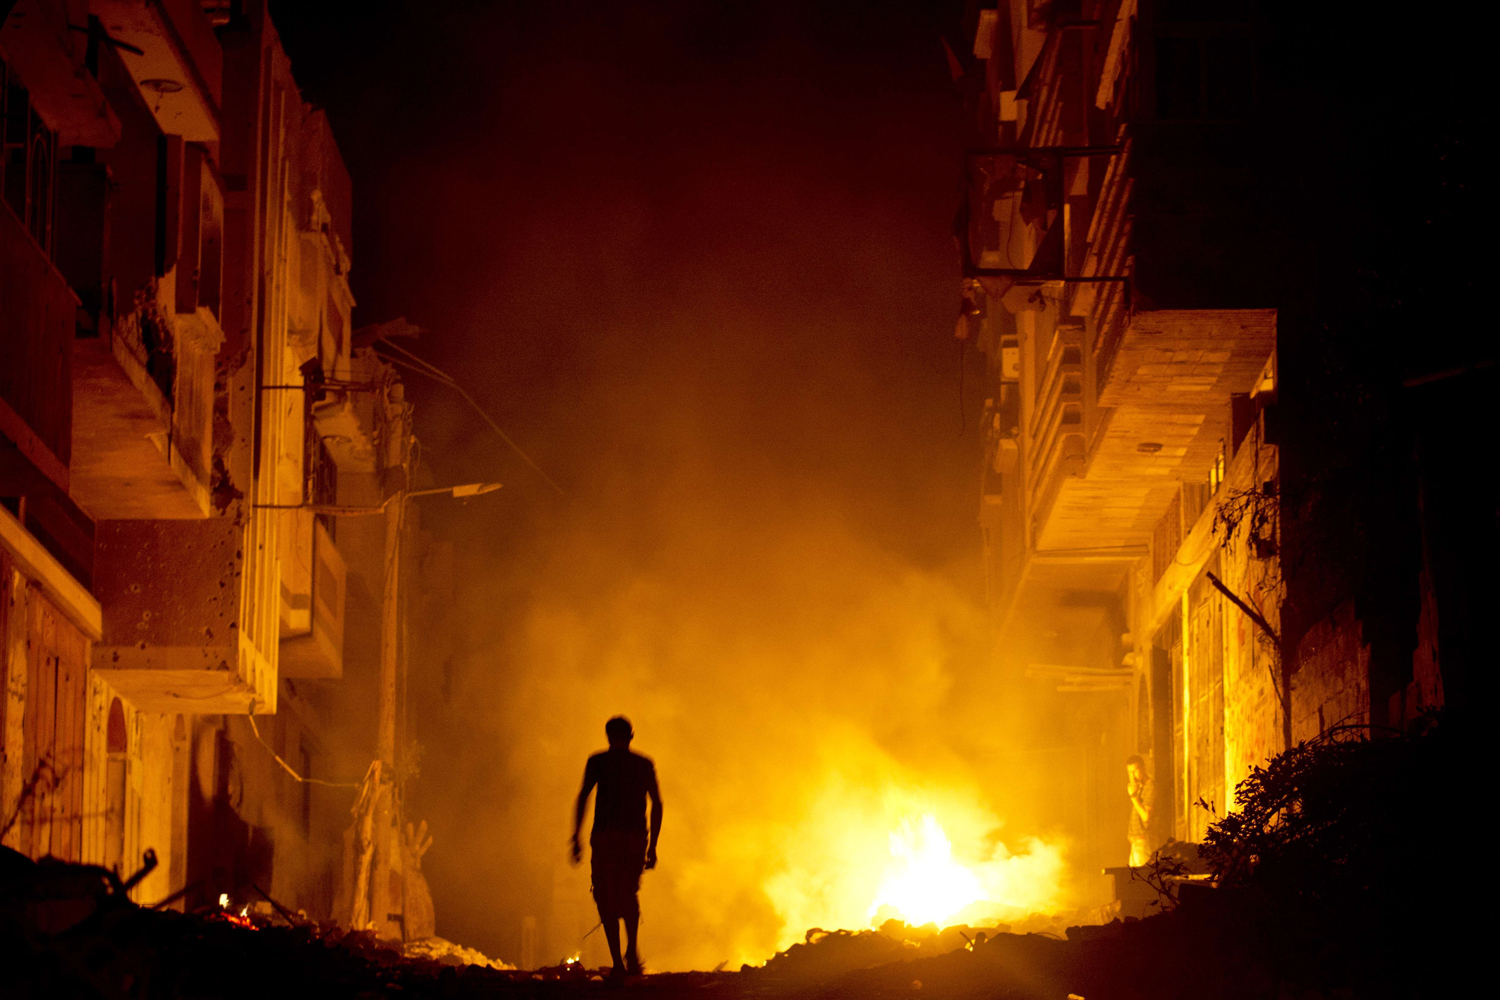 Aug. 27, 2014. A Palestinian man walks past a fire in a street set by a home owner in an effort to keep mosquitoes away from their shattered homes in Shejaiya.